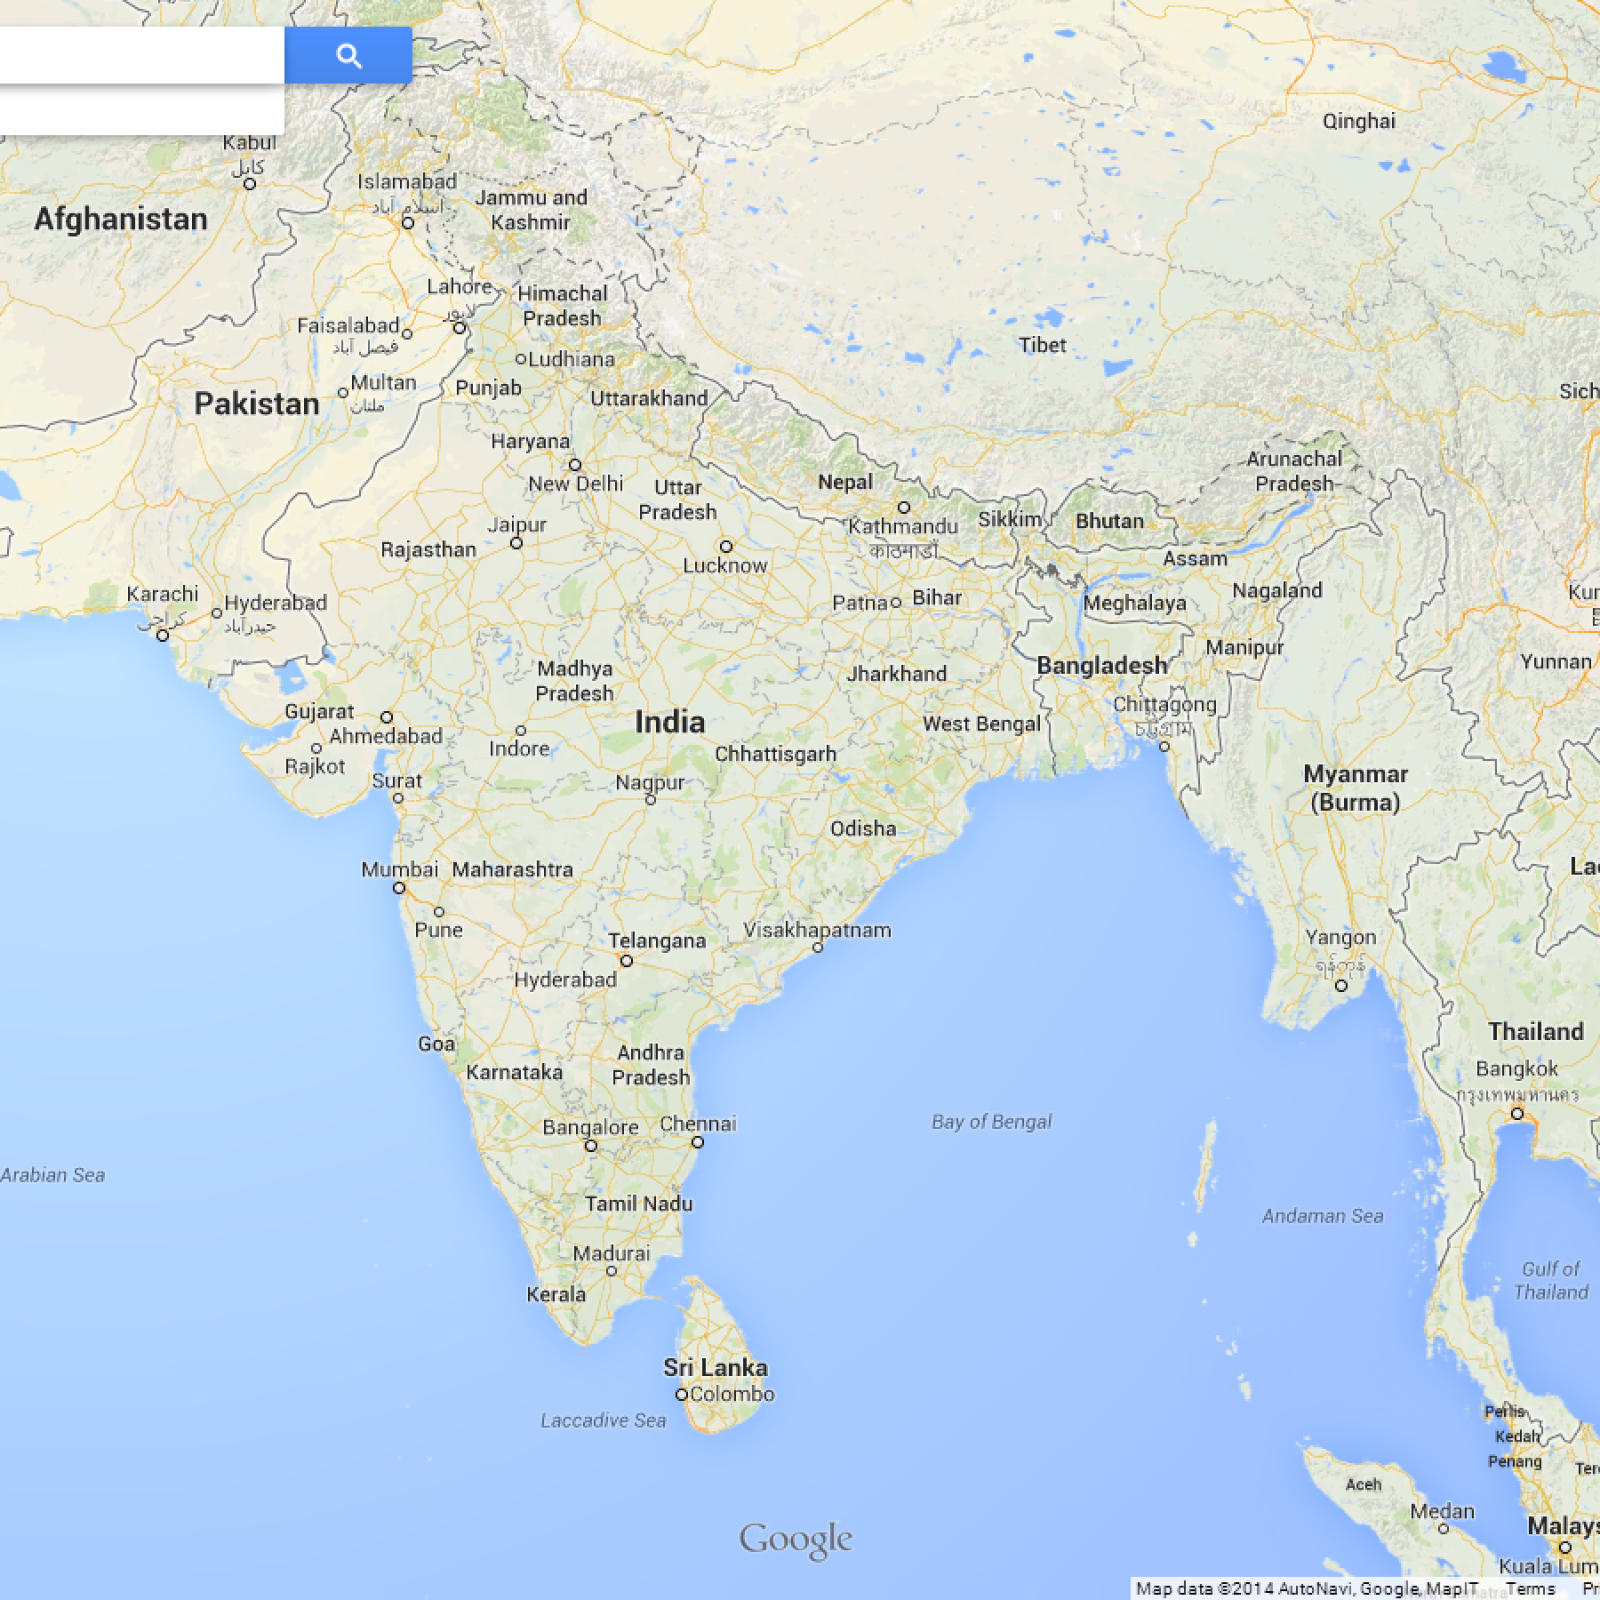 Google Might Have Accidentally Leaked the Locations of ... on address of india, satellite map of india, google map europe, google links, google earth india, aerial map of india, labeled map of india, google news from india, google map china, clickable map of india, google map burma, google map southeast asia, enchanted learning map of india, book of india, google map japan, current map of india, printable map of india, google fact sheet, google map malaysia, world map india,